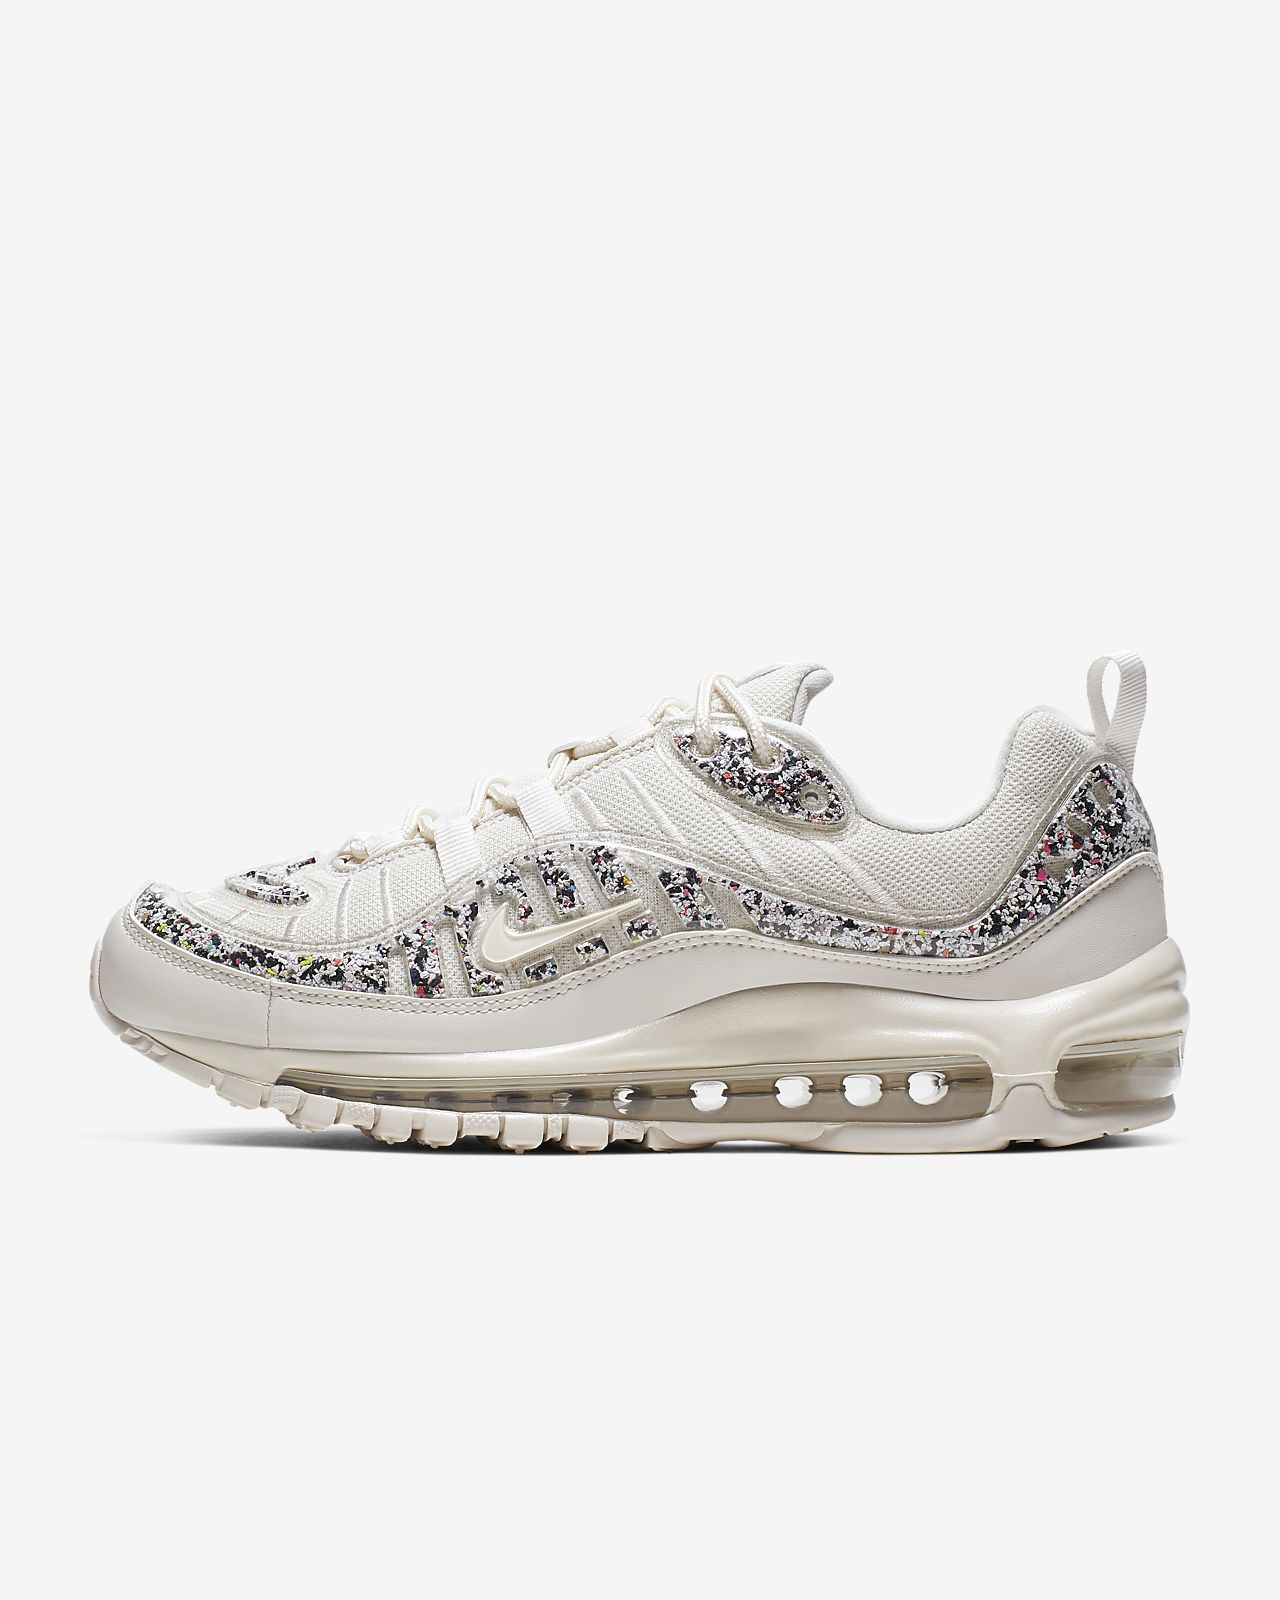 Nike Air Max 98 LX Damenschuh. Nike BE